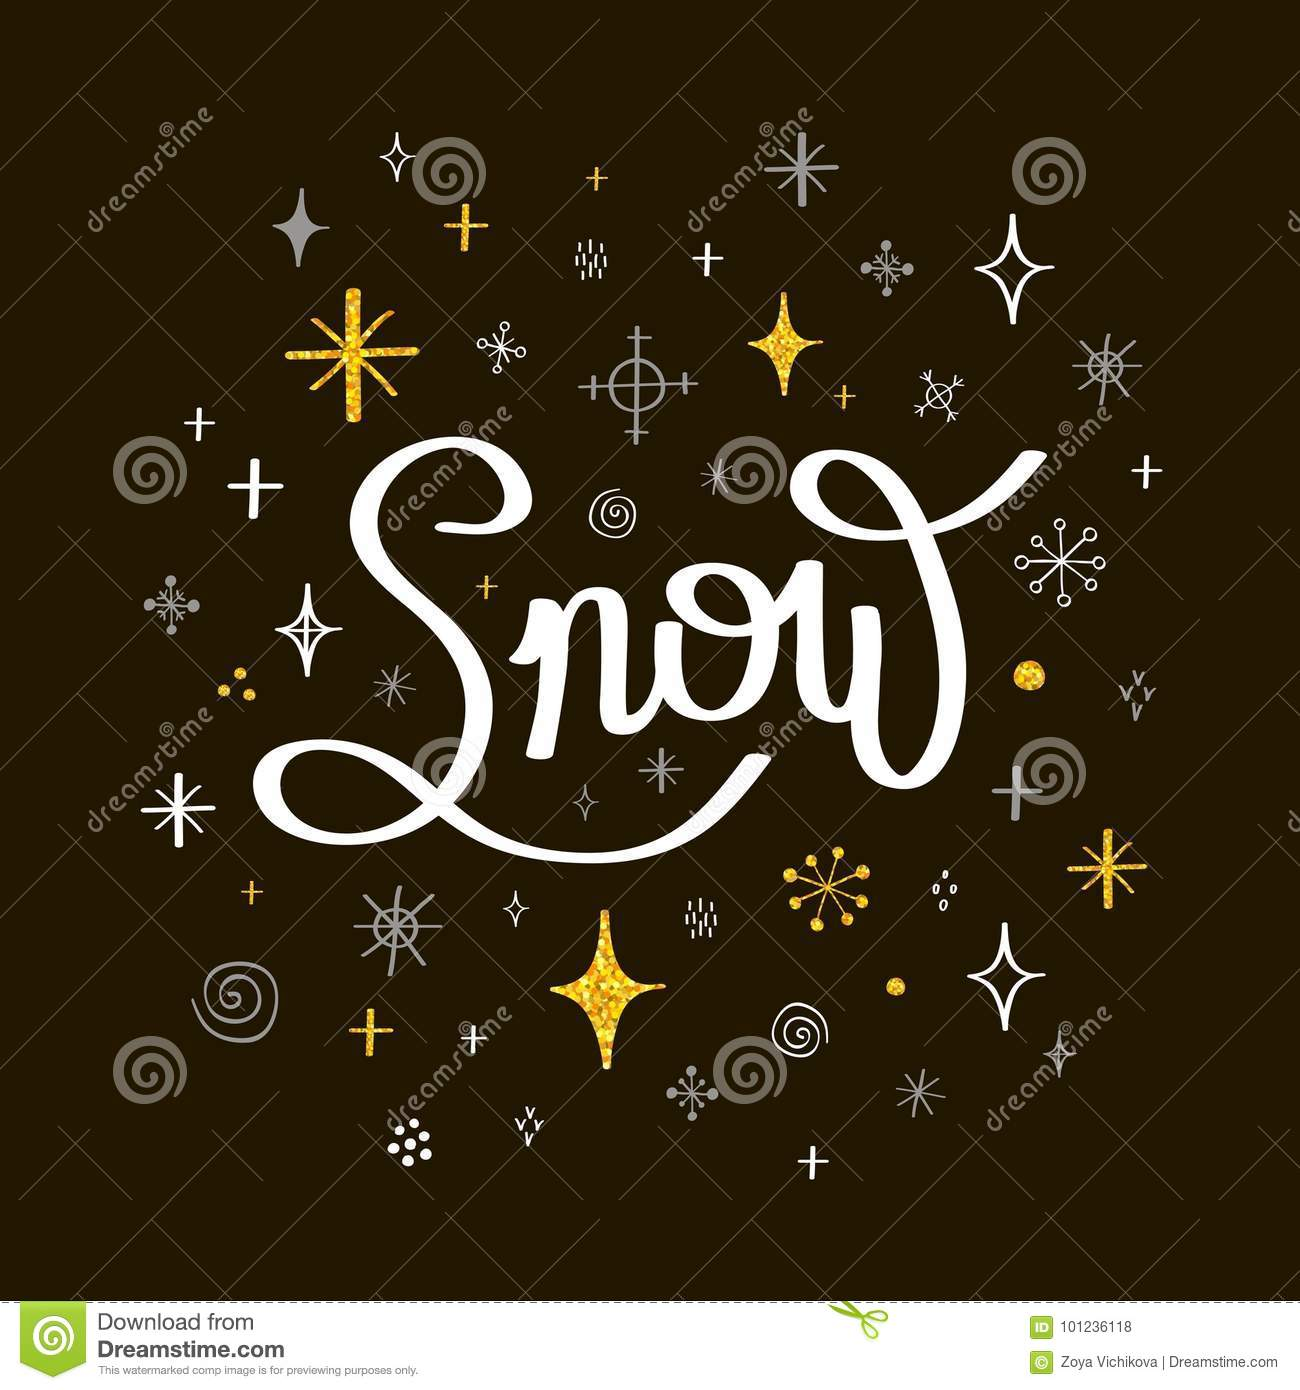 new year greeting cardlettering snow with snowflakes on a black